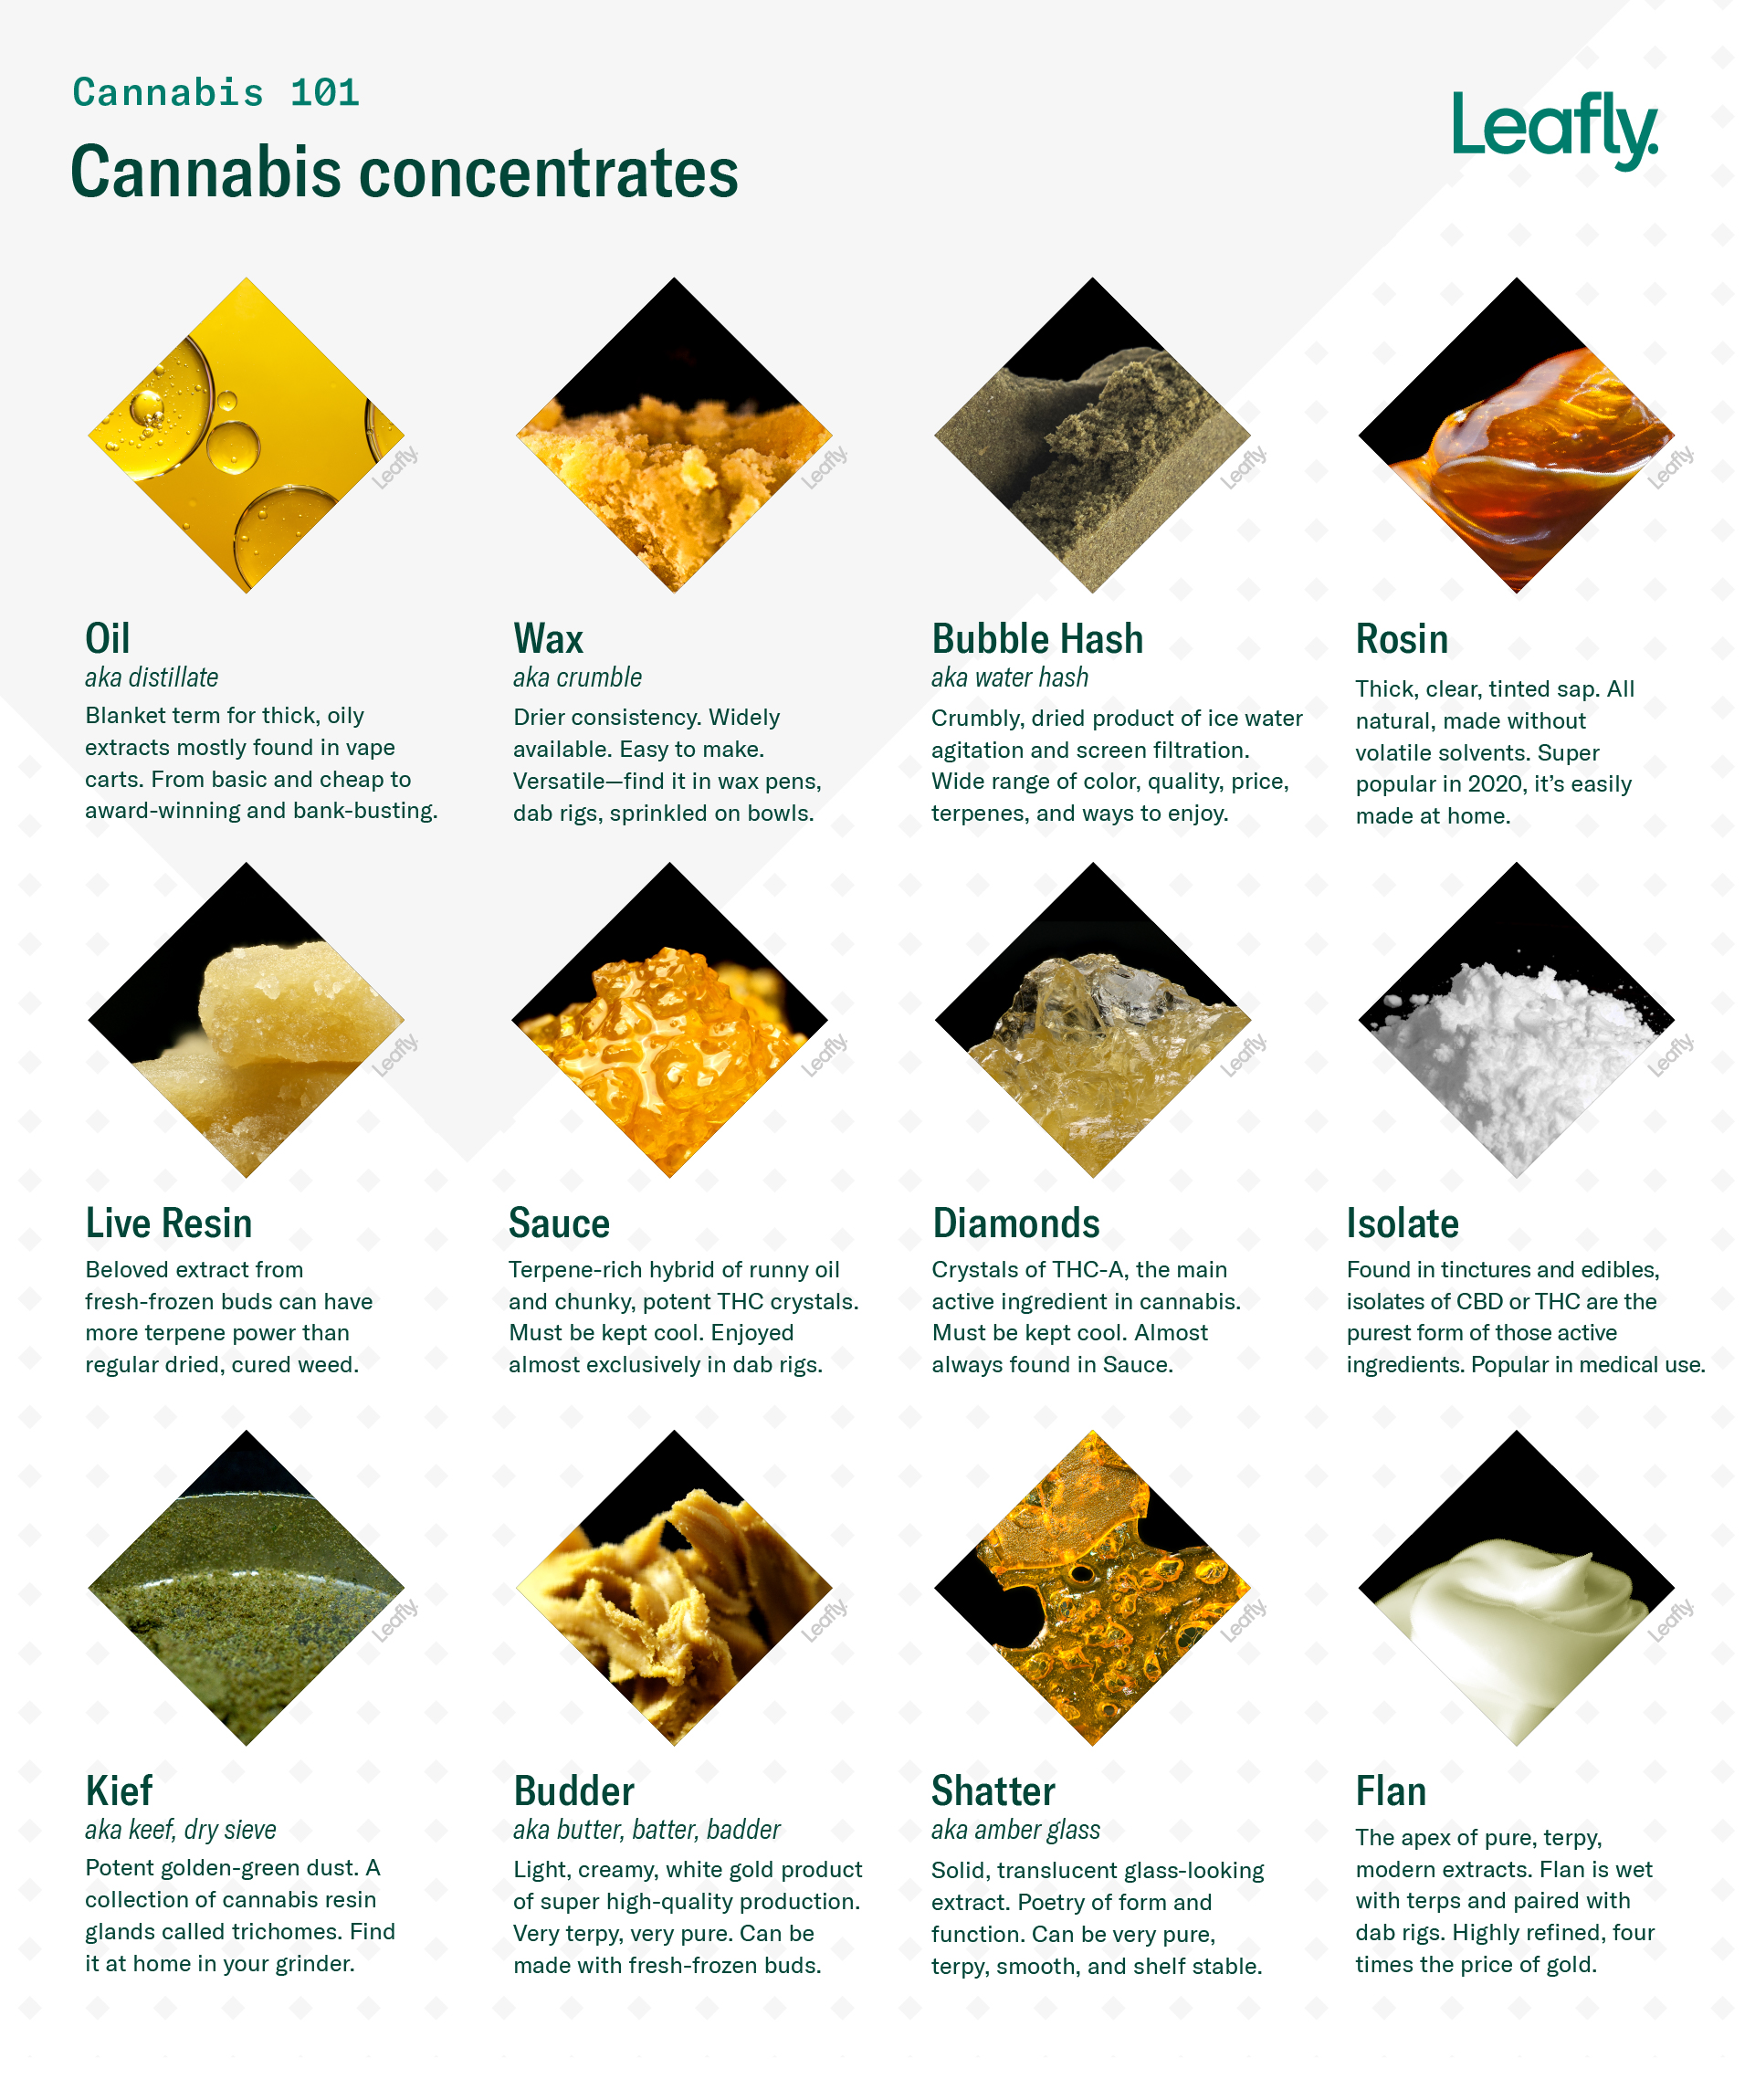 Learn about different types of cannabis concentrates, from oil to wax to bubble hash and more